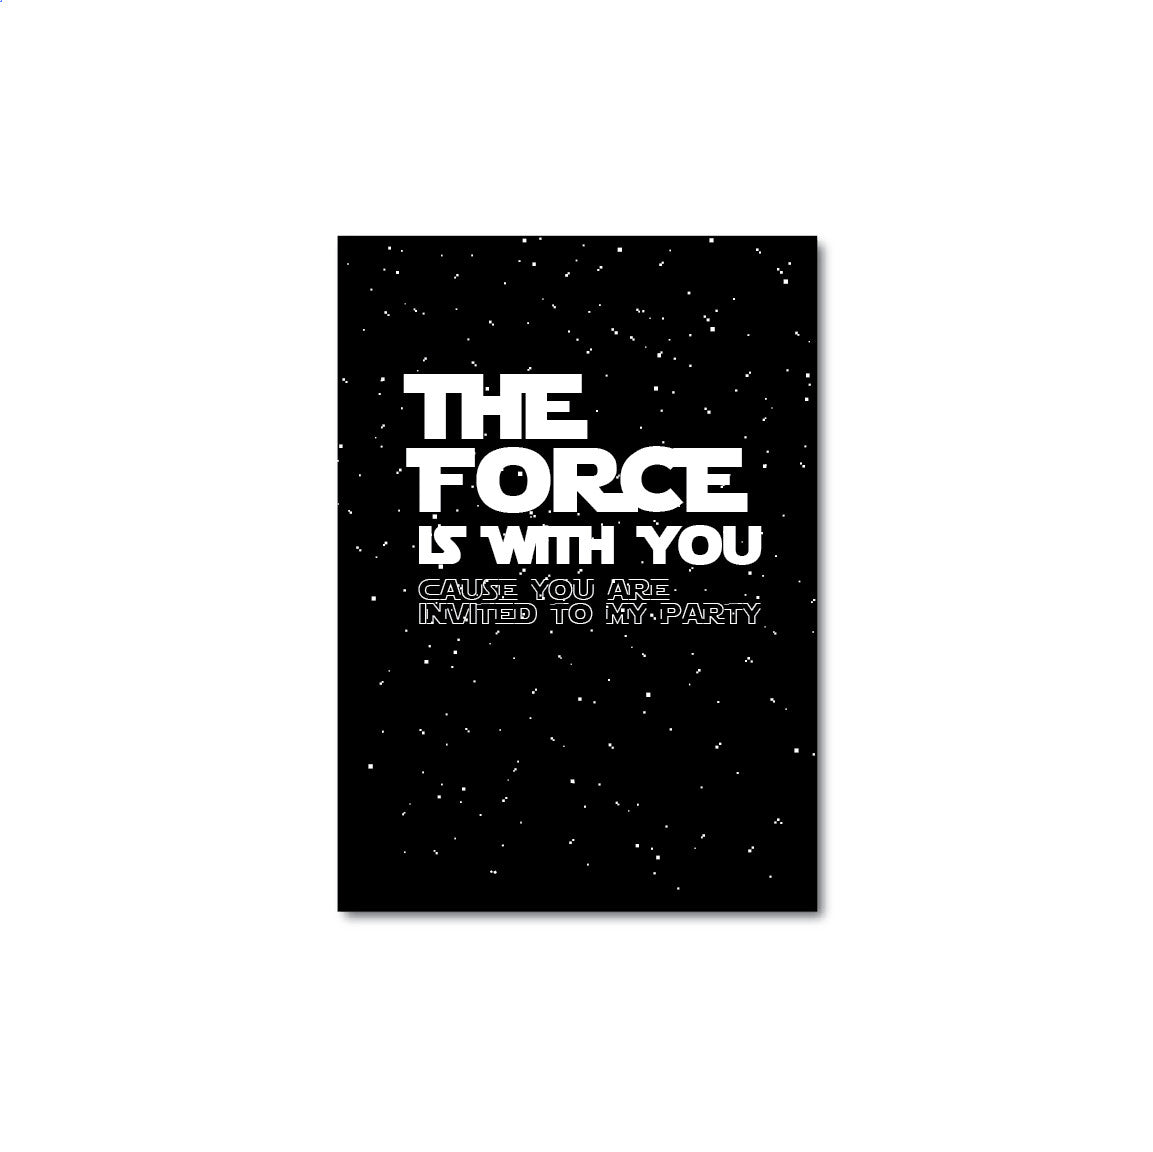 image about Printable Star Wars Invitation named Printable Star Wars Invitation 1 - partystudio